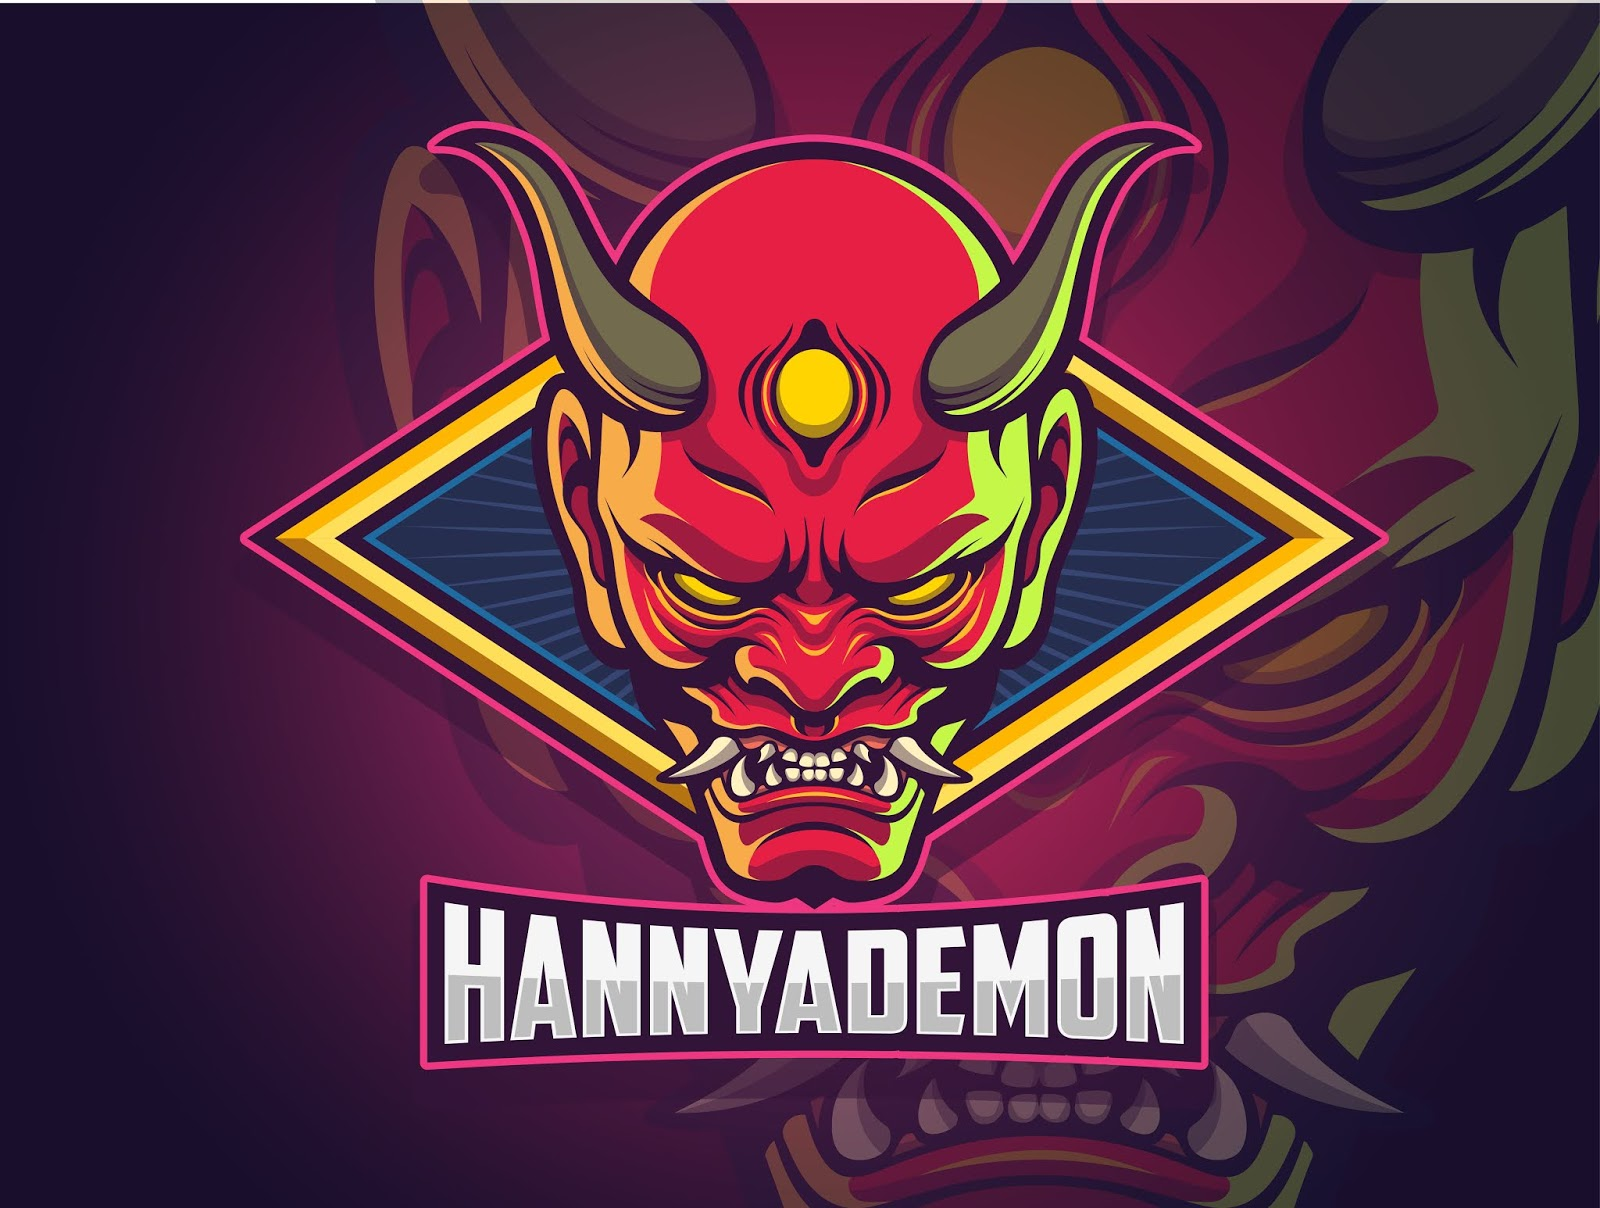 Hannya Demon Face Esports Logo Design Your Team Free Download Vector CDR, AI, EPS and PNG Formats